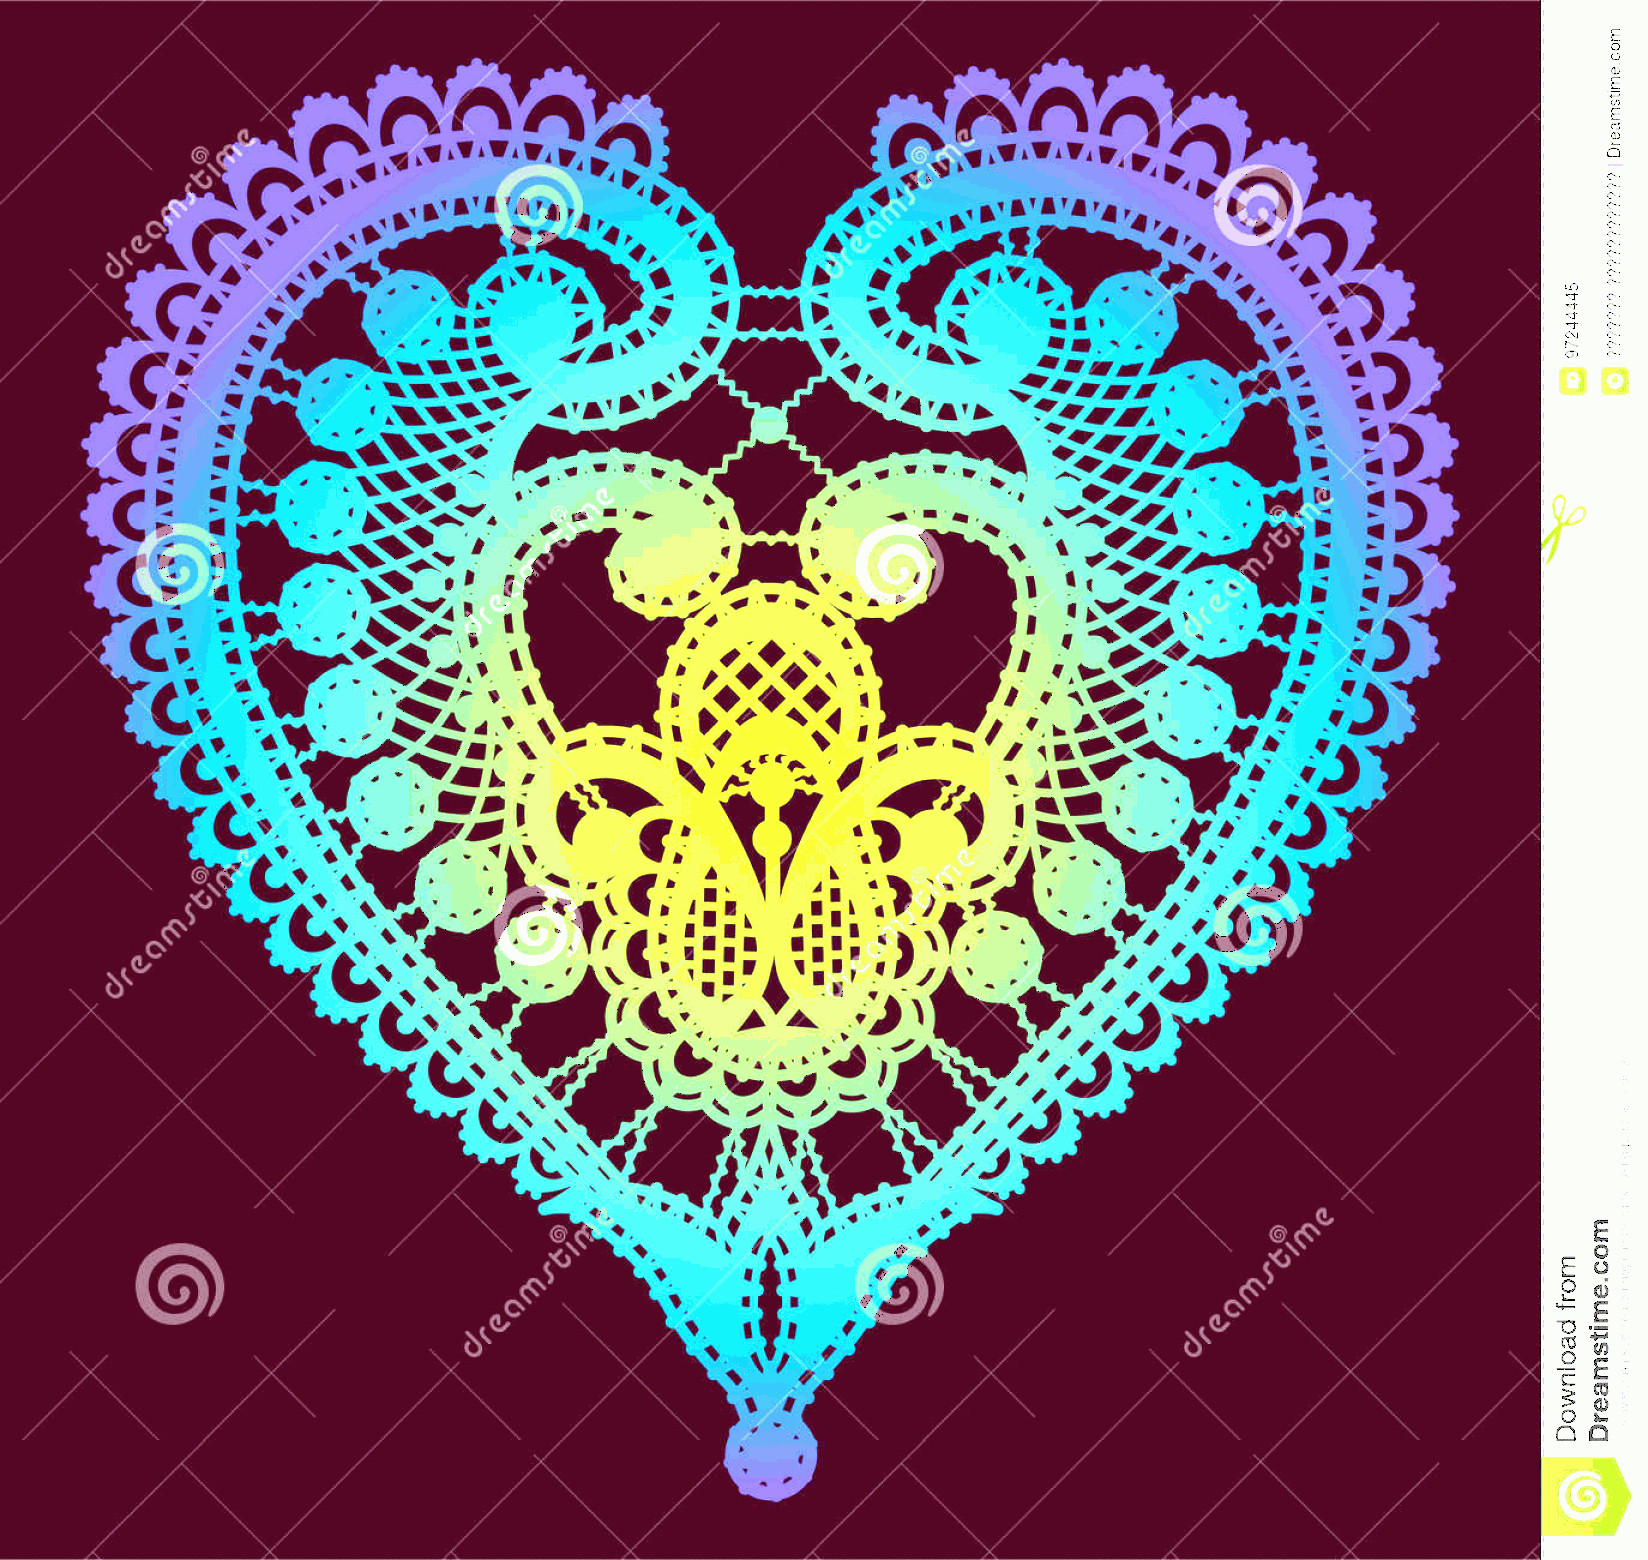 Lace Vector Images Free Clip Art: Stock Illustration Lace Heart Clip Art Black Silhouette Vector Shape Pink Background Image